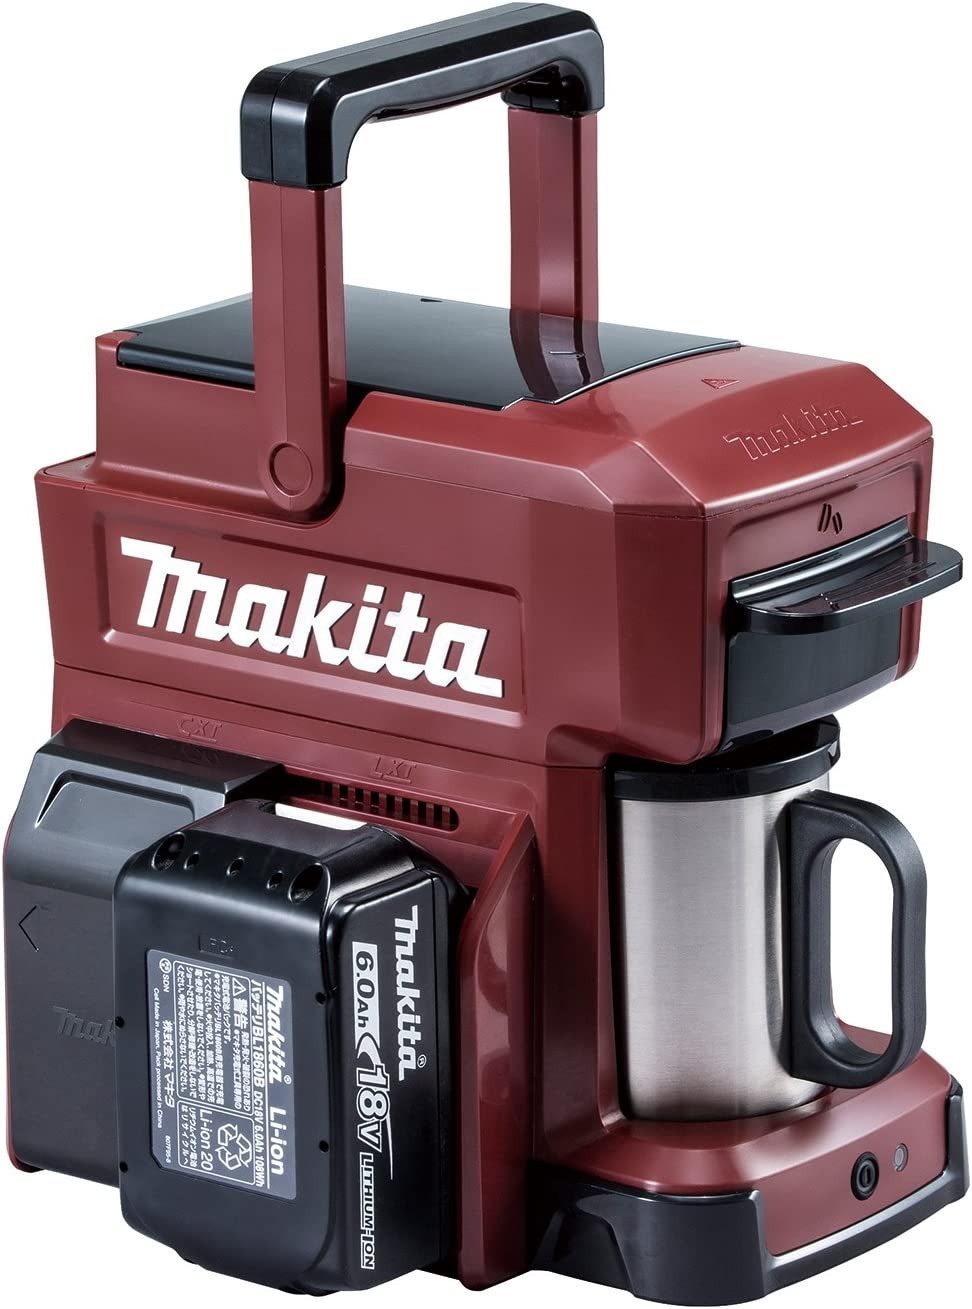 MAKITA Rechargeable Coffee Maker CM501DZAR Authentic Red Japan Domestic genuine products Ships from JAPAN